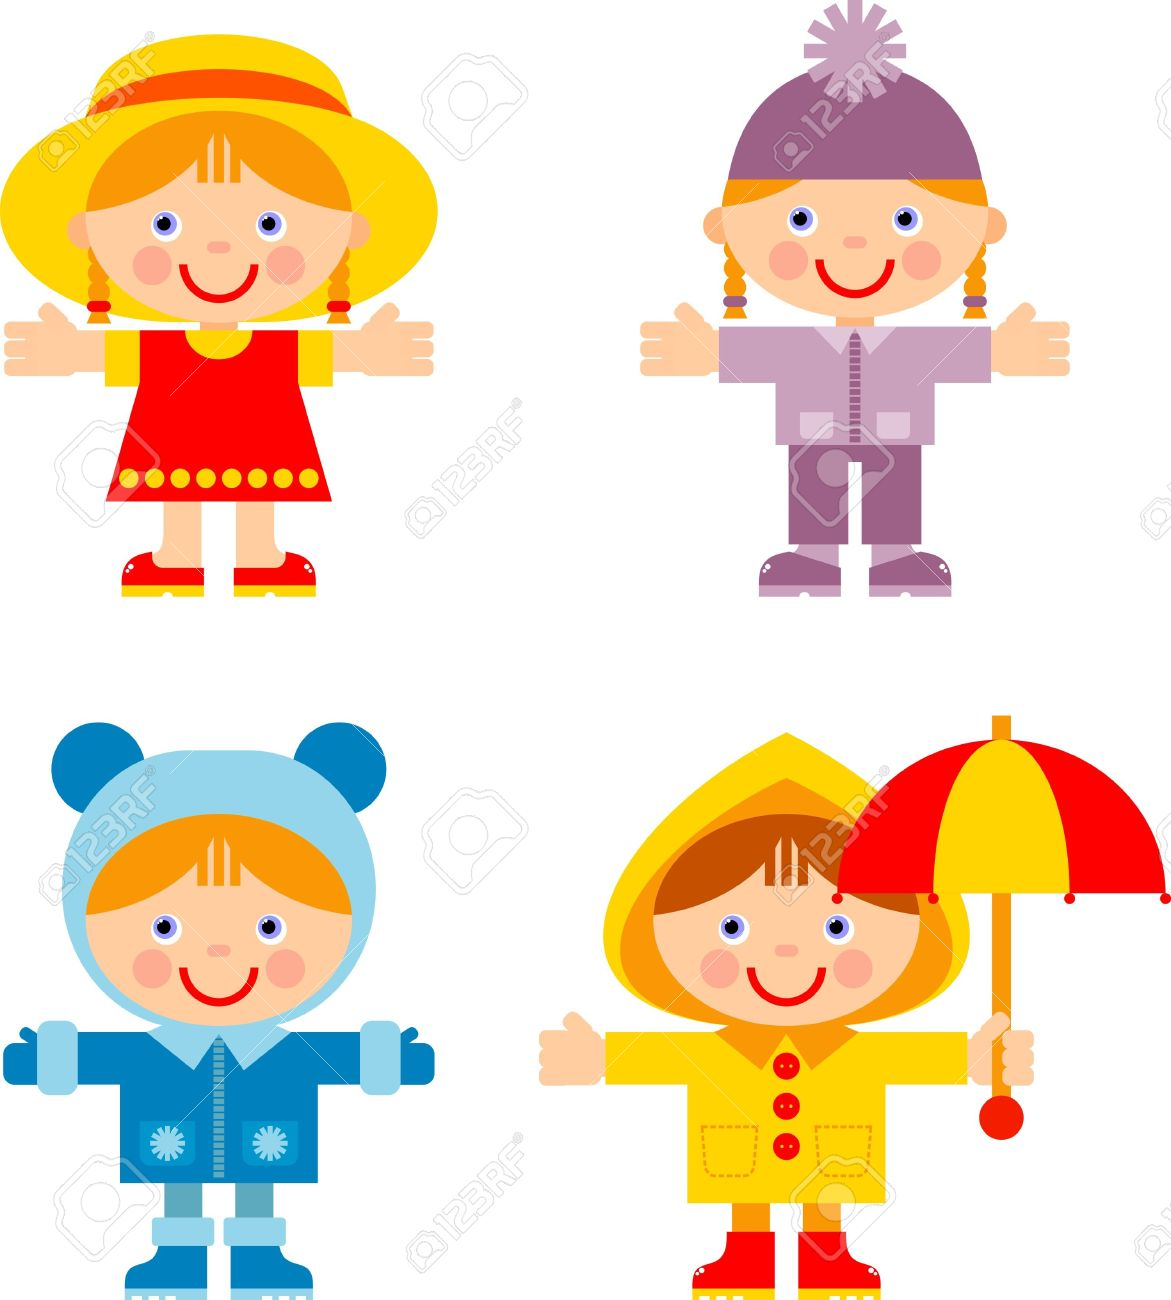 Kids Summer Clothes Clipart | Free download on ClipArtMag